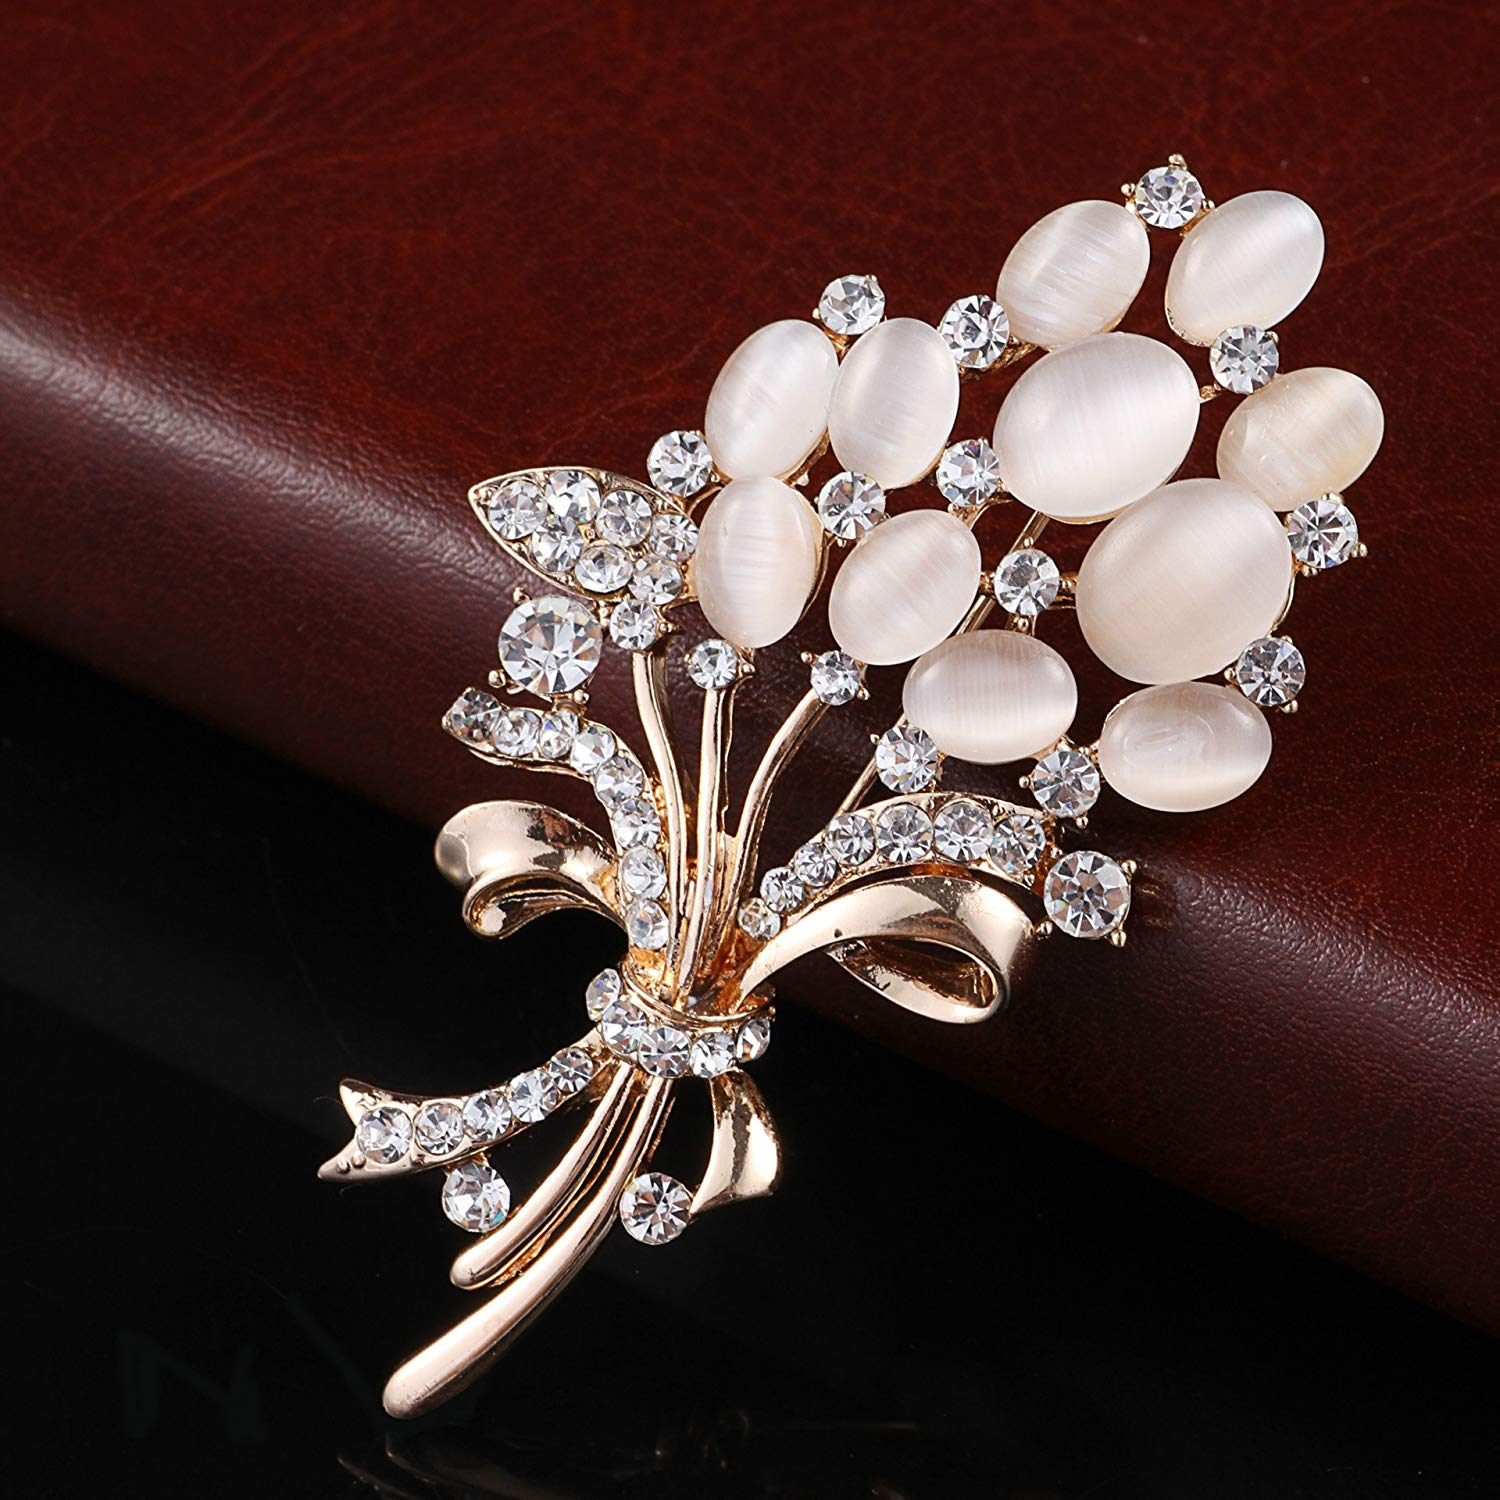 Crystal Brooch pins Vintage Opal Flower brooches for women wedding party broches mujer hijab pins-in Brooches